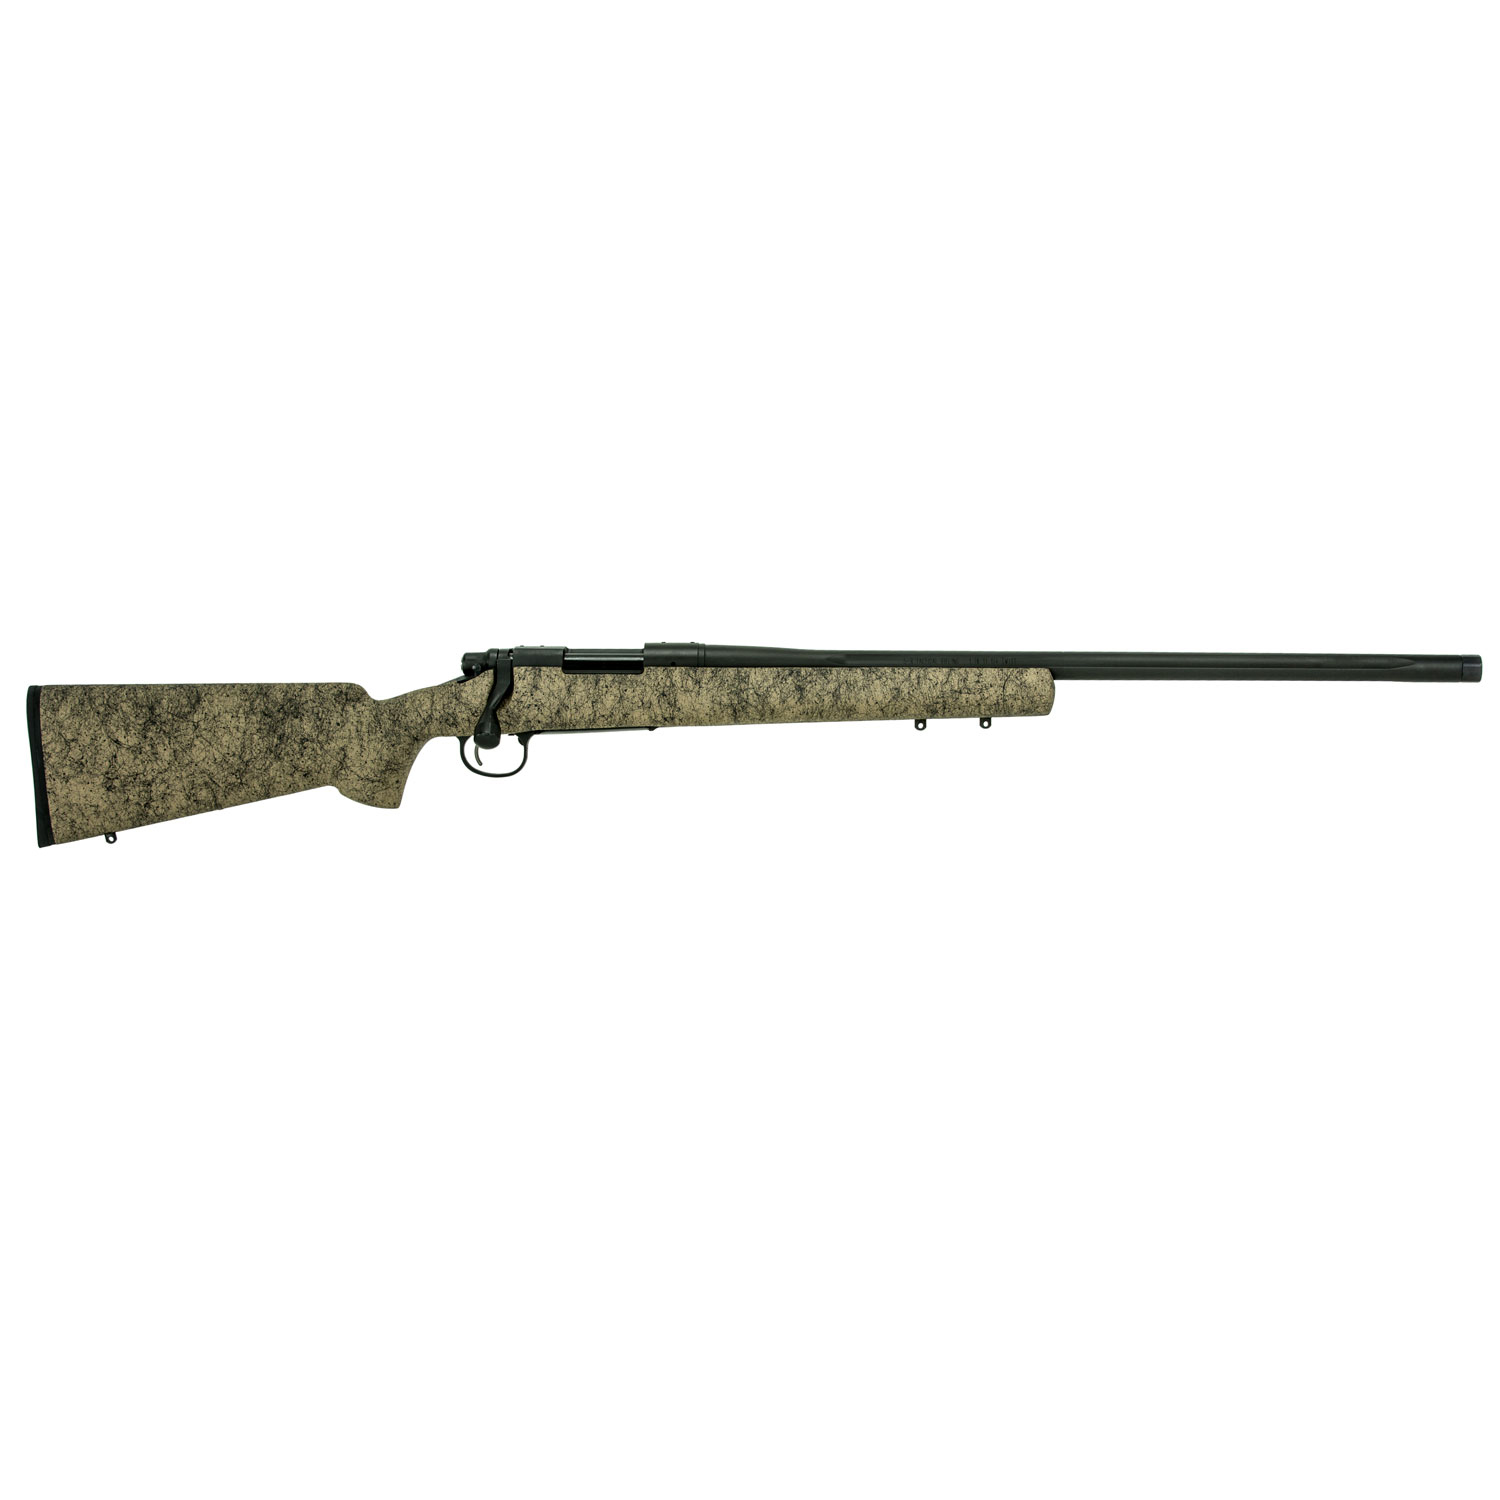 Remington 700 5R Gen 2 Sand Centerfire Rifle, .308 Win, 24″ BBL